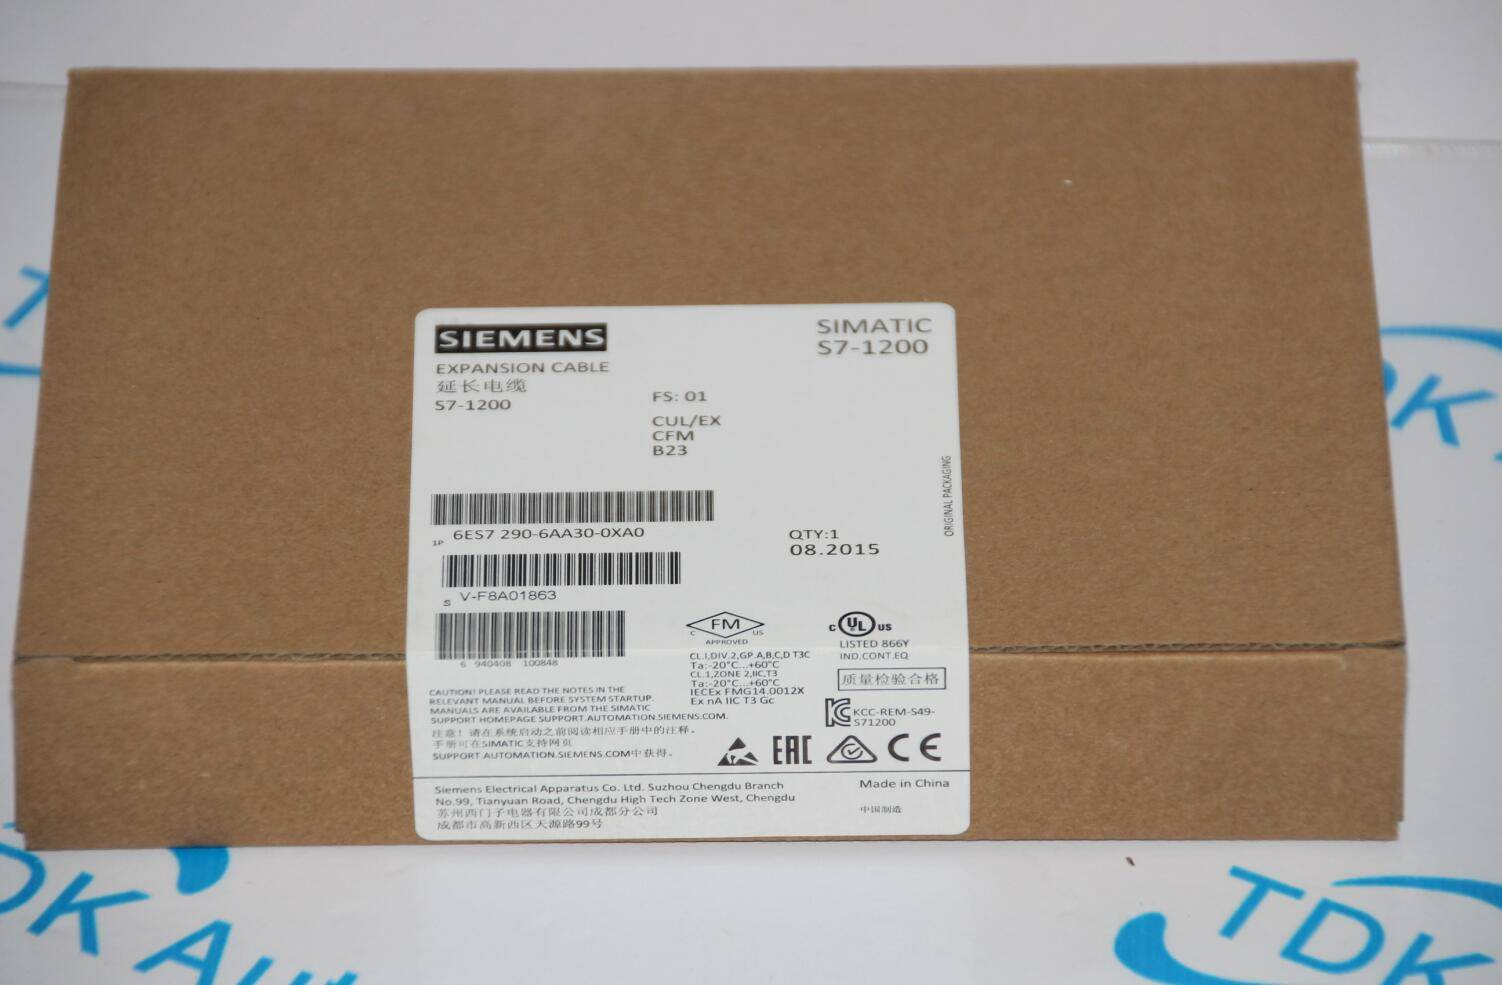 SIEMENS EXPANSION CABLE S7-1200 CABLE 6ES7290-6AA30-0XA0